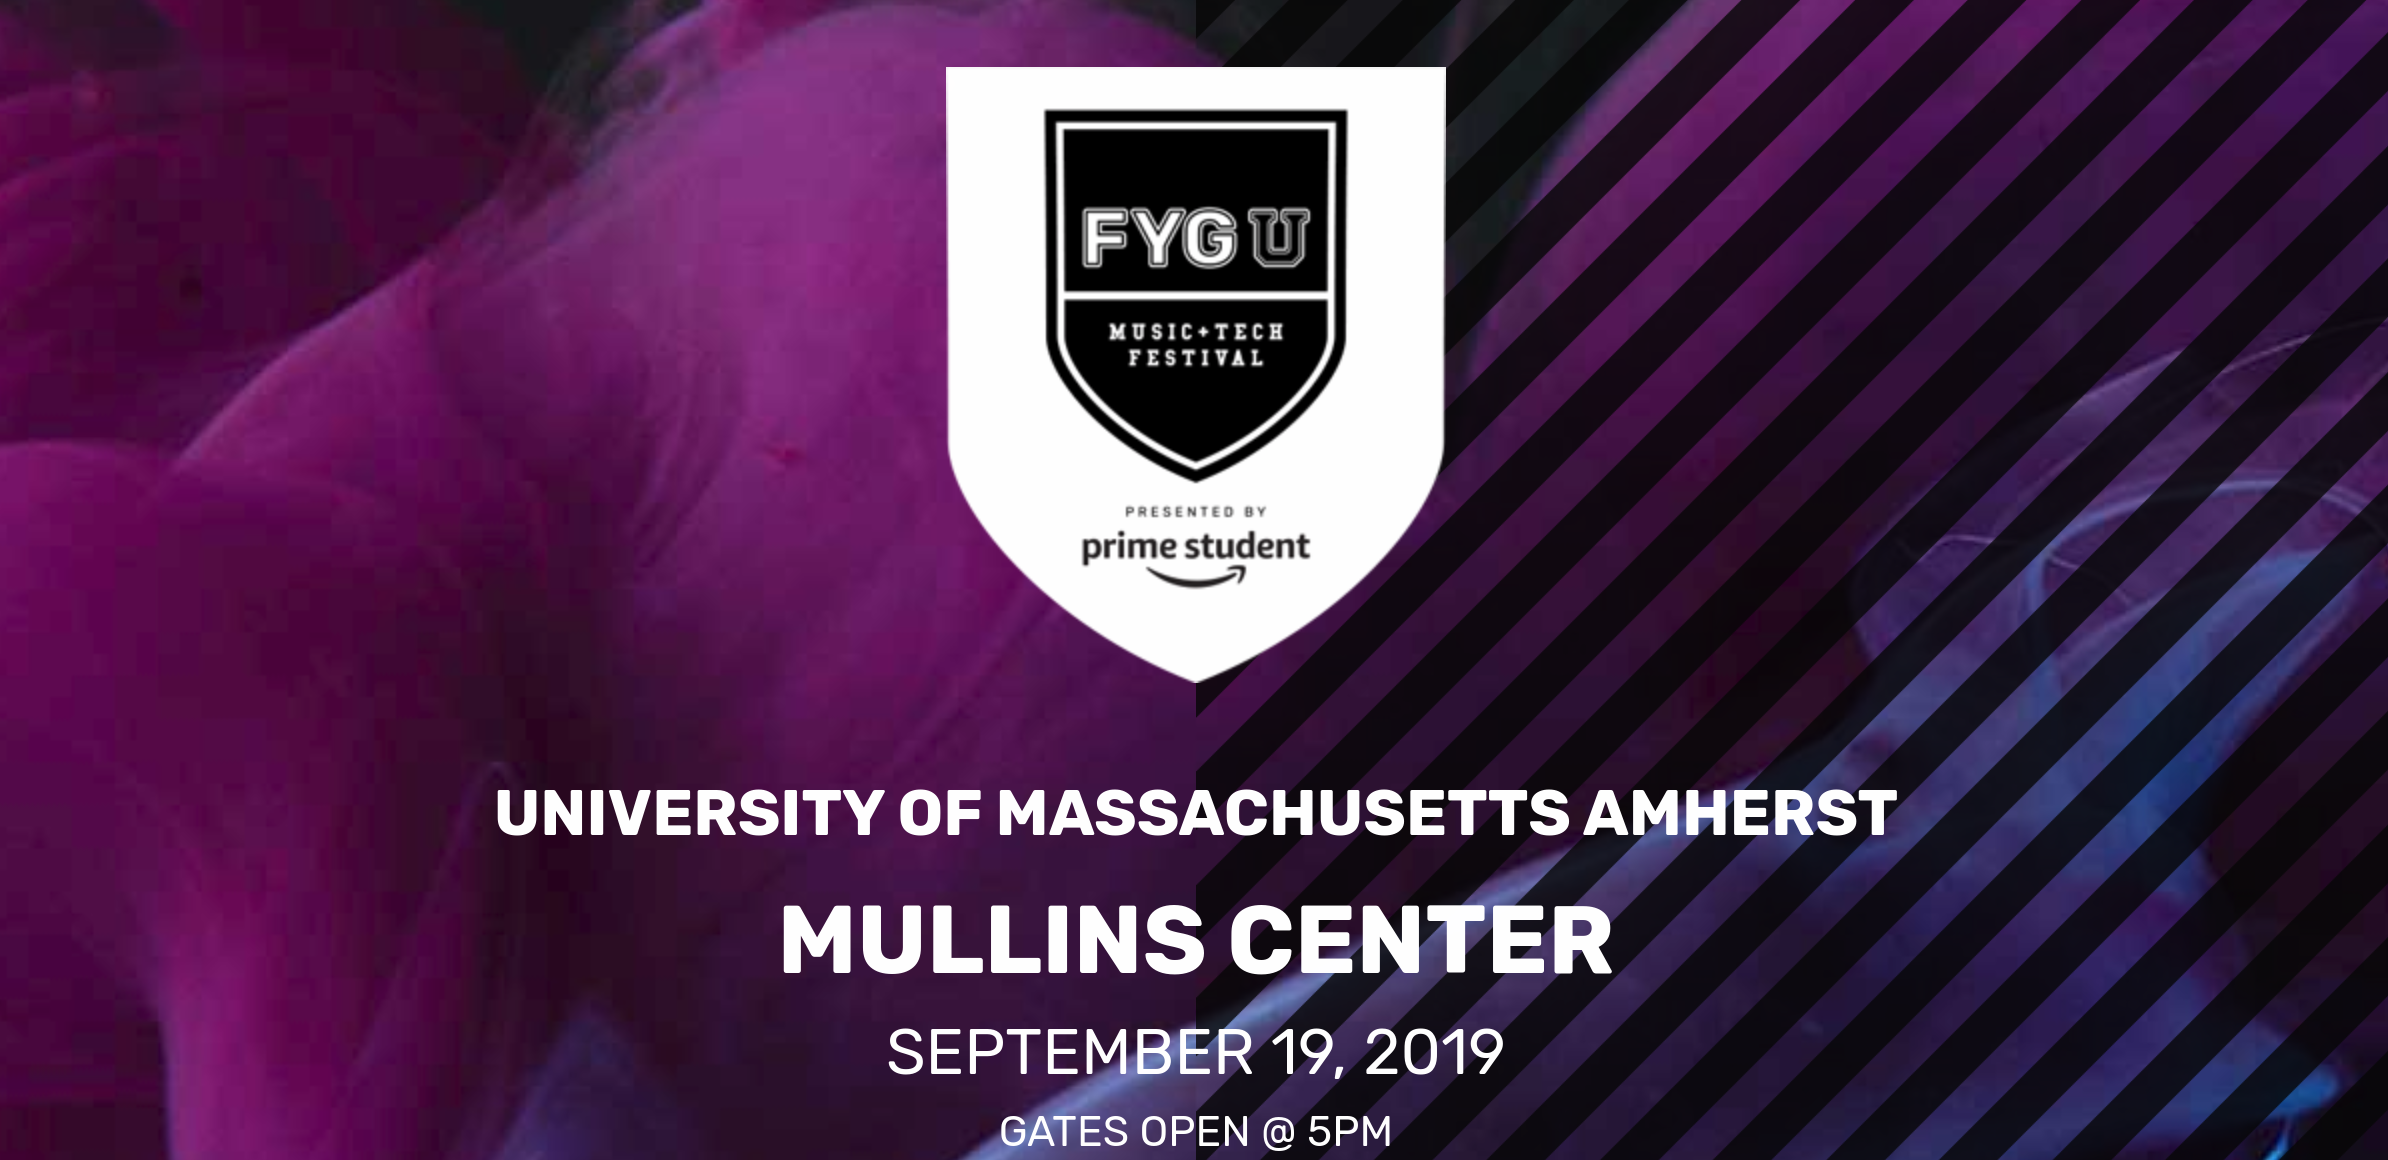 UMass Amherst presents FYGUFEST with Pusha T ft. Lil Tecca, Luh Kel, Souly Had, Savage Ga$p, and Teyonahh